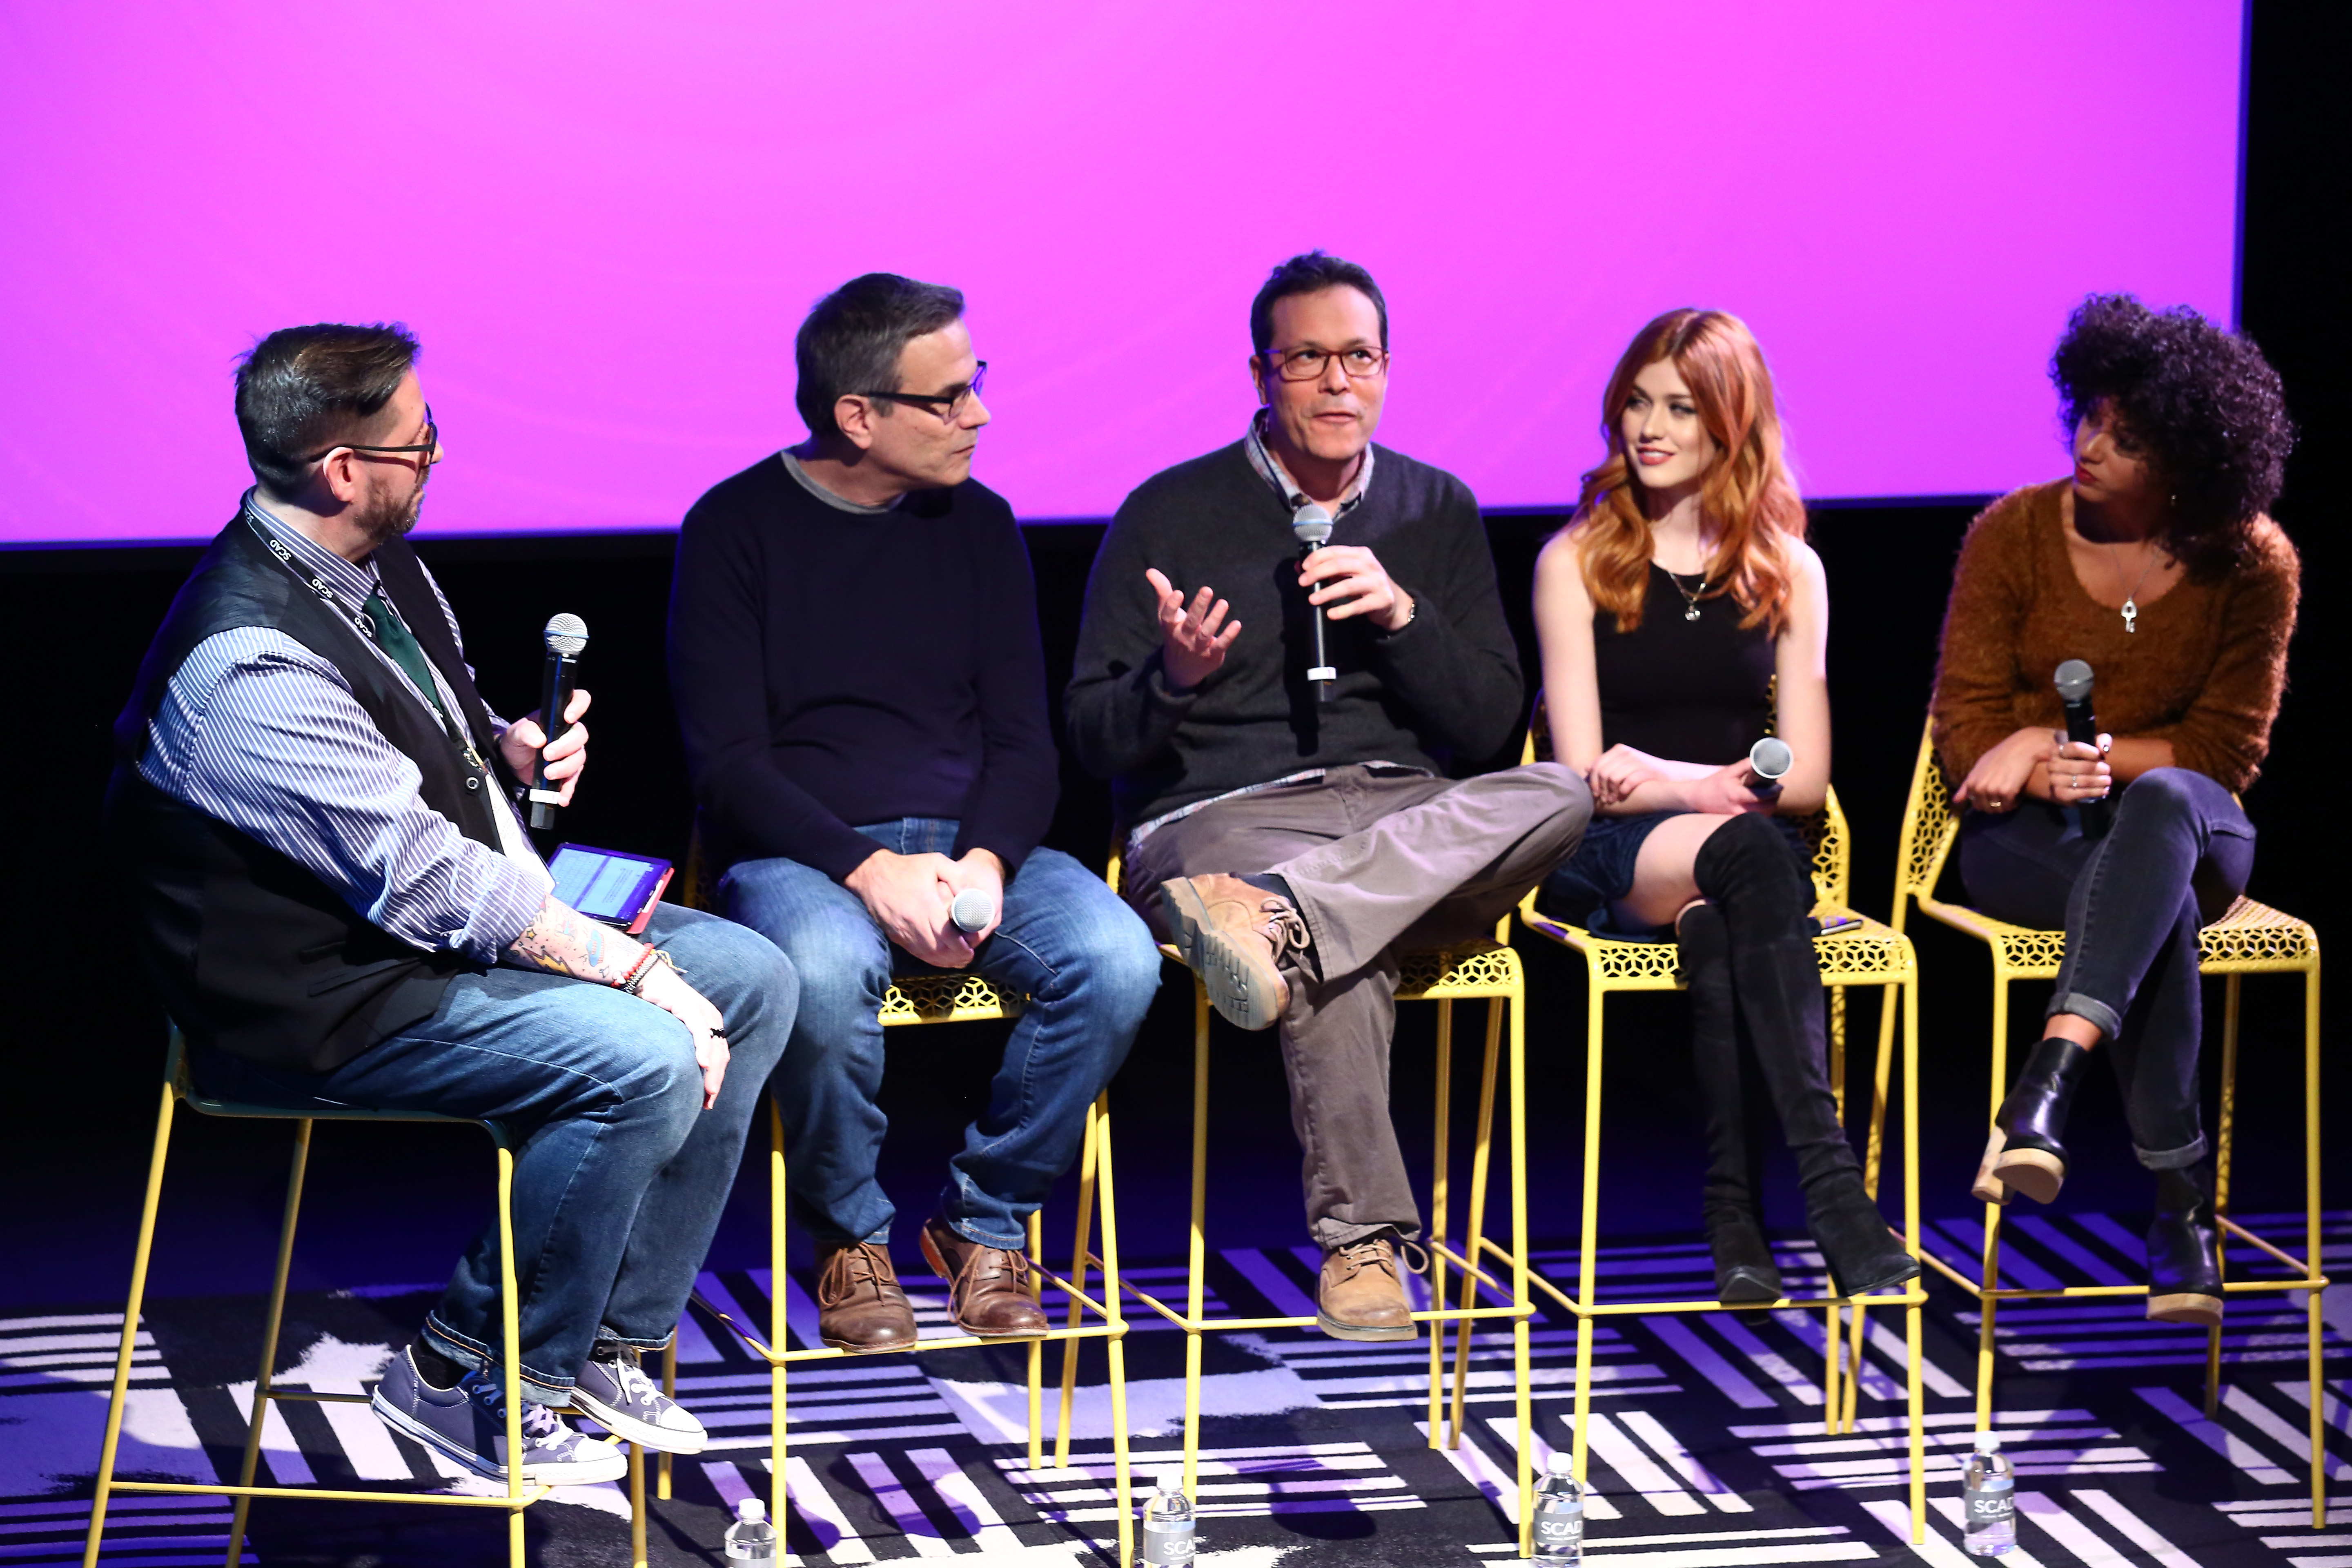 (L-R) Moderator Damian Holbrook, Executive producers Darren Swimmer and Todd Slavkin, and actresses Katherine McNamara and Alisha Wainwright speak on stage during Q&A session for 'Shadowhunters' on Day Three of aTVfest 2017 presented by SCAD at SCADshow Mainstage on February 4, 2017 in Atlanta, Georgia. (Photo by Astrid Stawiarz/Getty Images for SCAD)